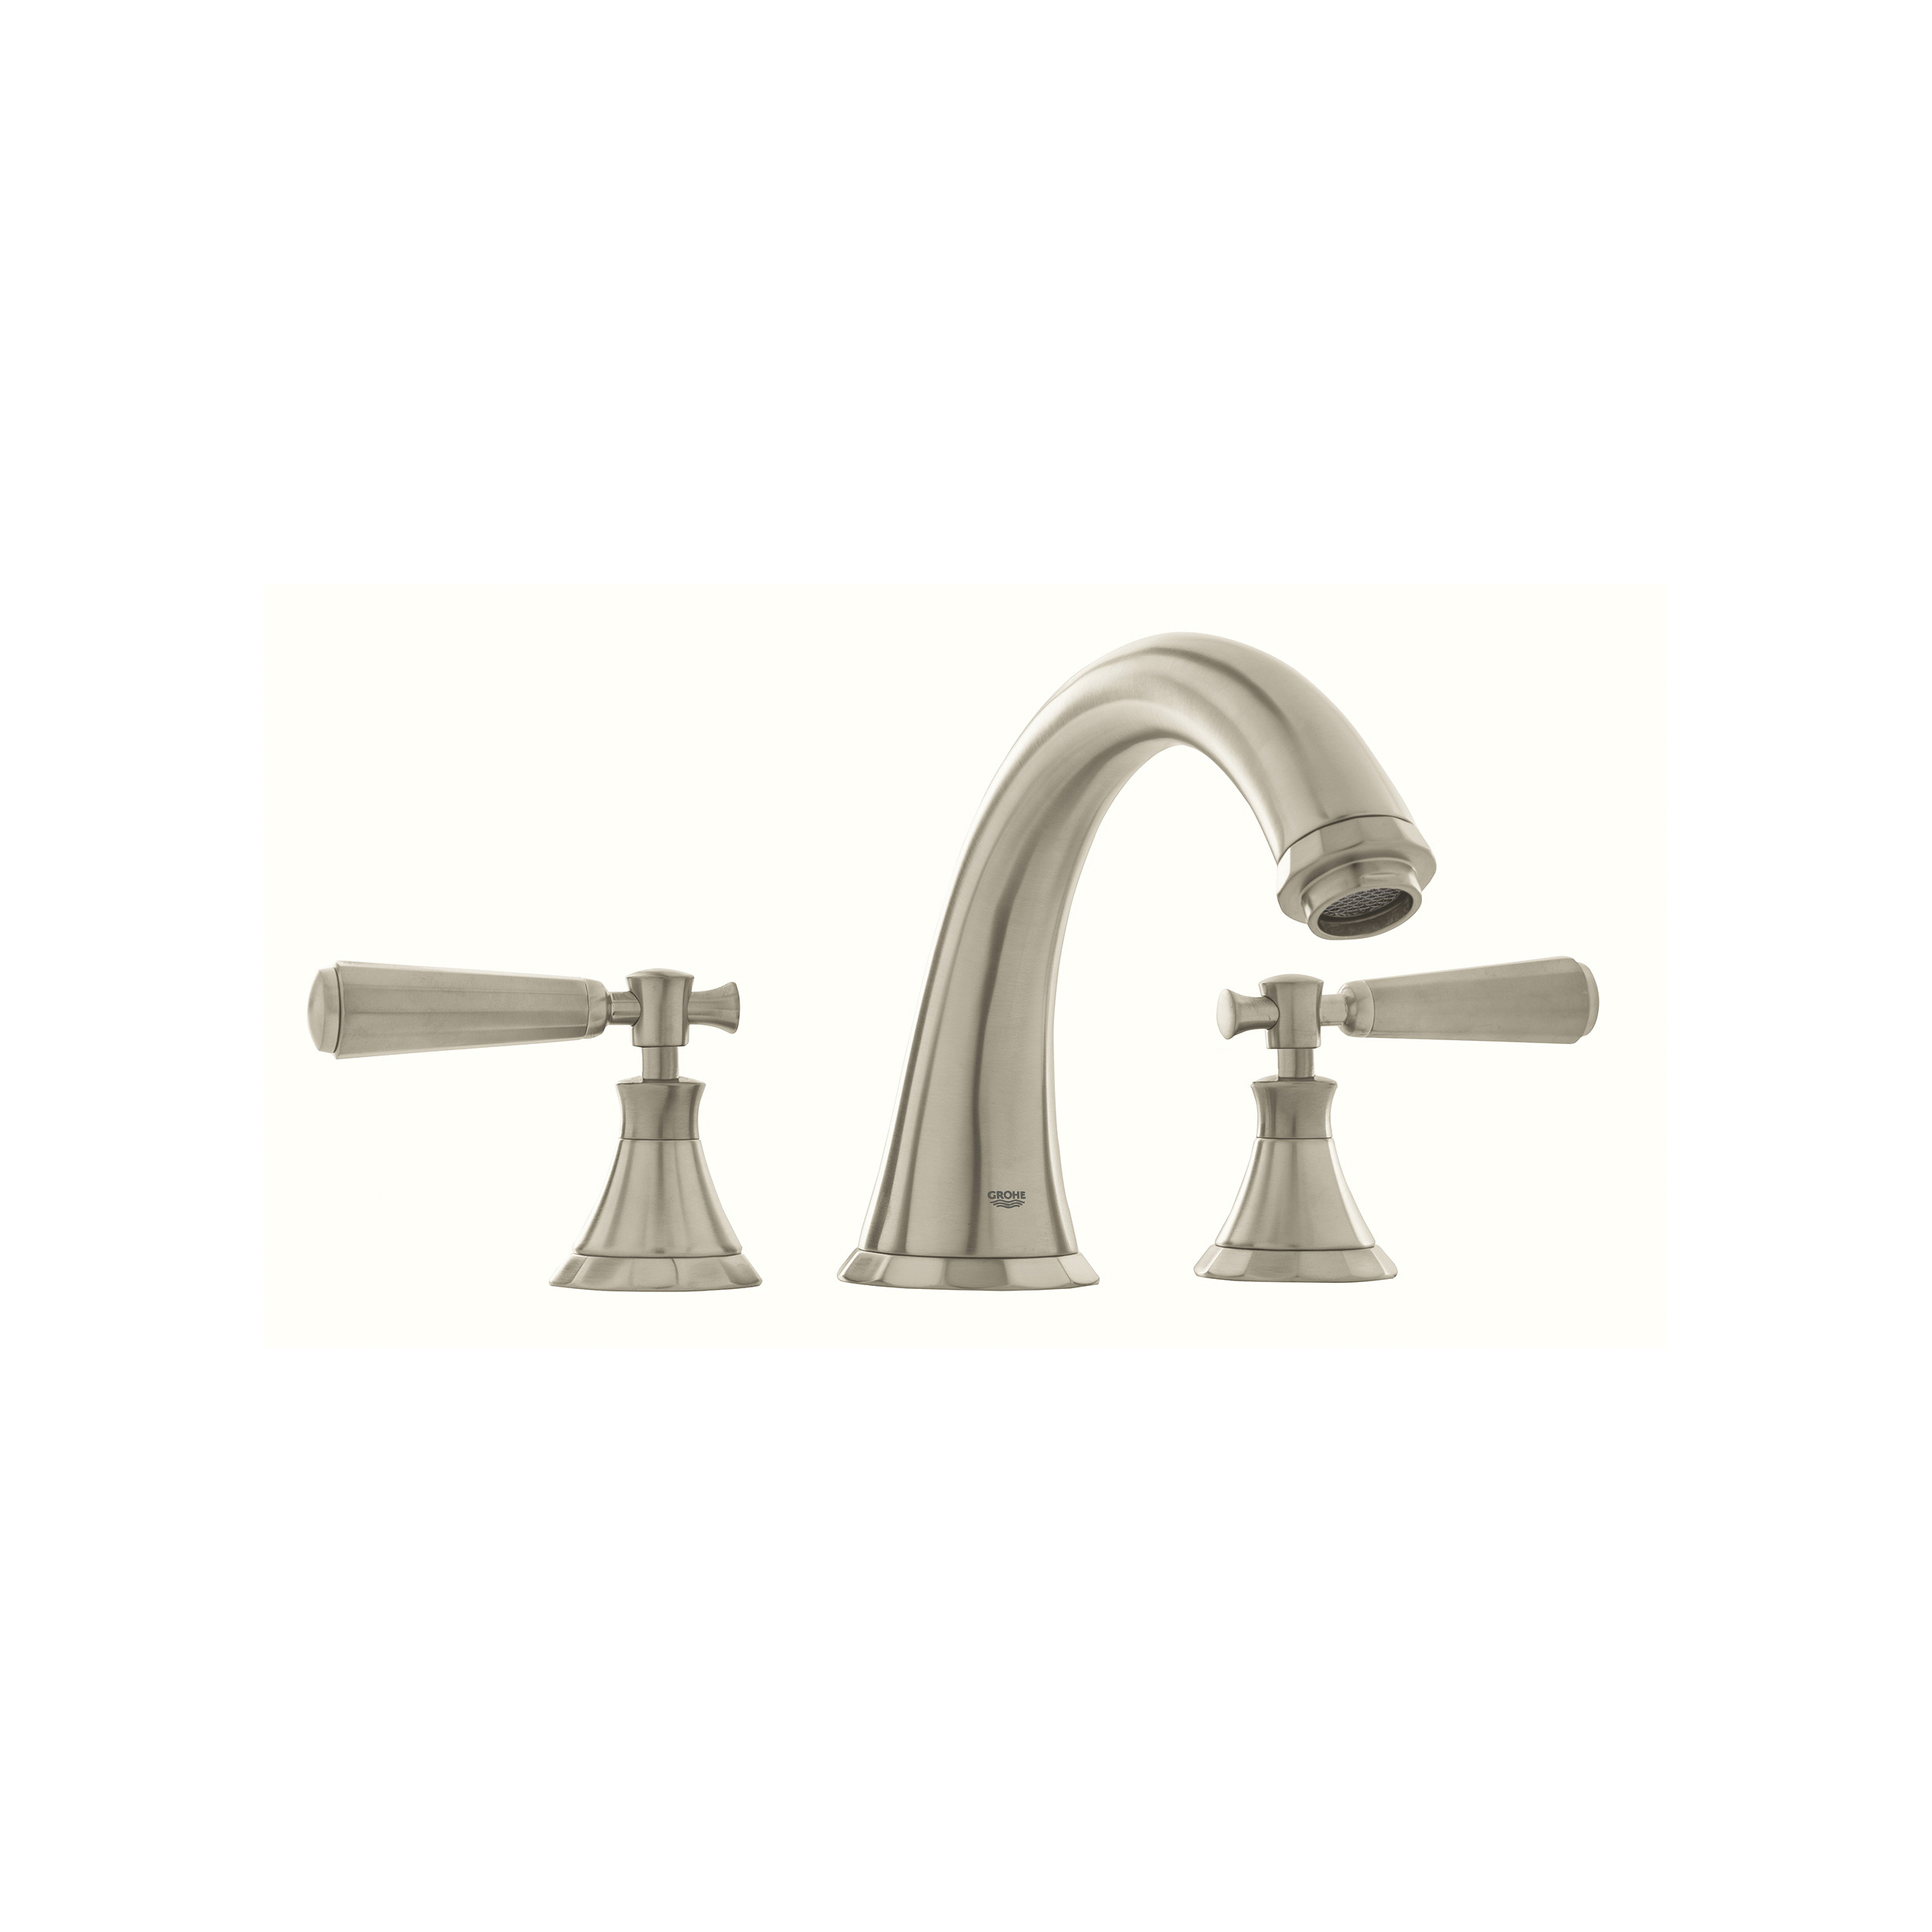 GROHE 25074EN0 Kensington® Roman Tub Filler, 13.2 gpm, StarLight® Brushed Nickel, 2 Handles, Hand Shower Yes/No: No, Import